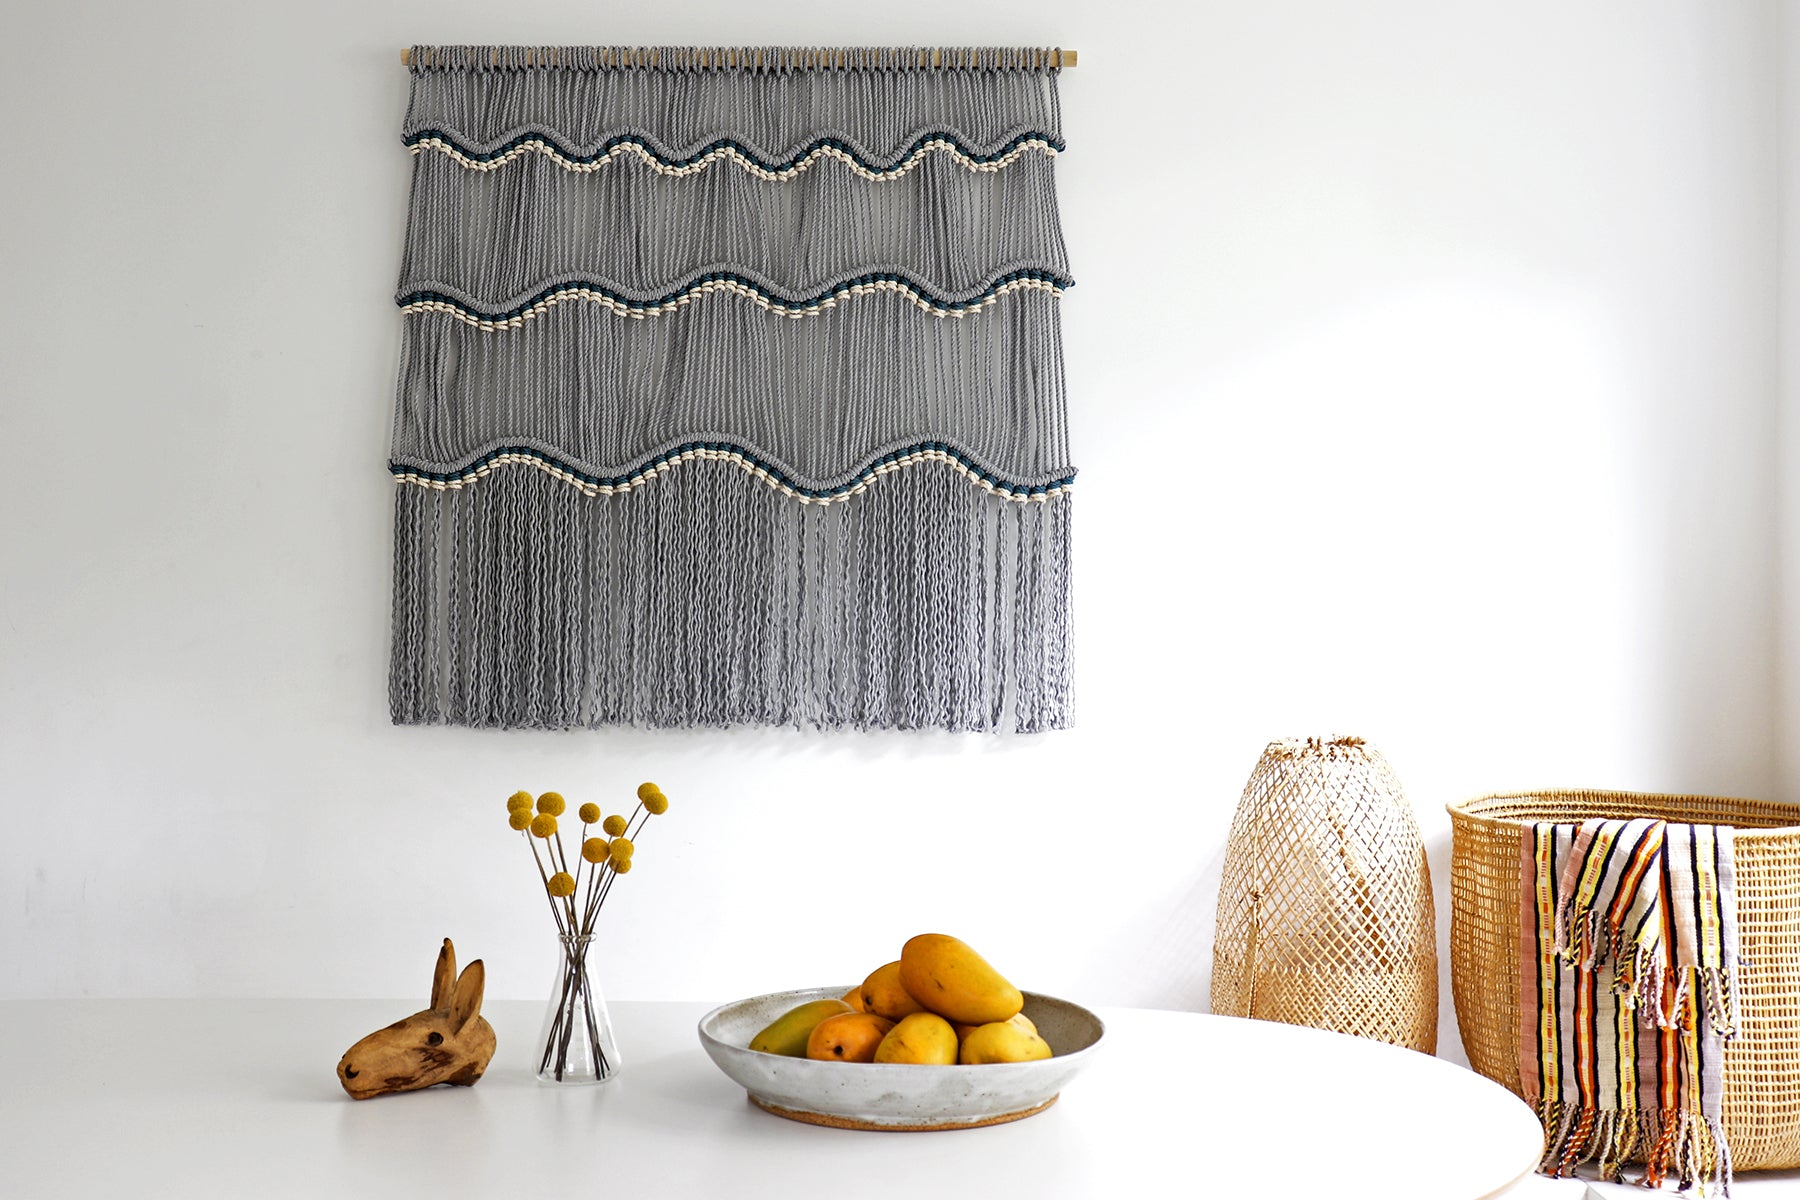 Guatemal Waves Macramé Pattern wall hanging is a fun diy project using 5mm cotton rope and a wooden dowel